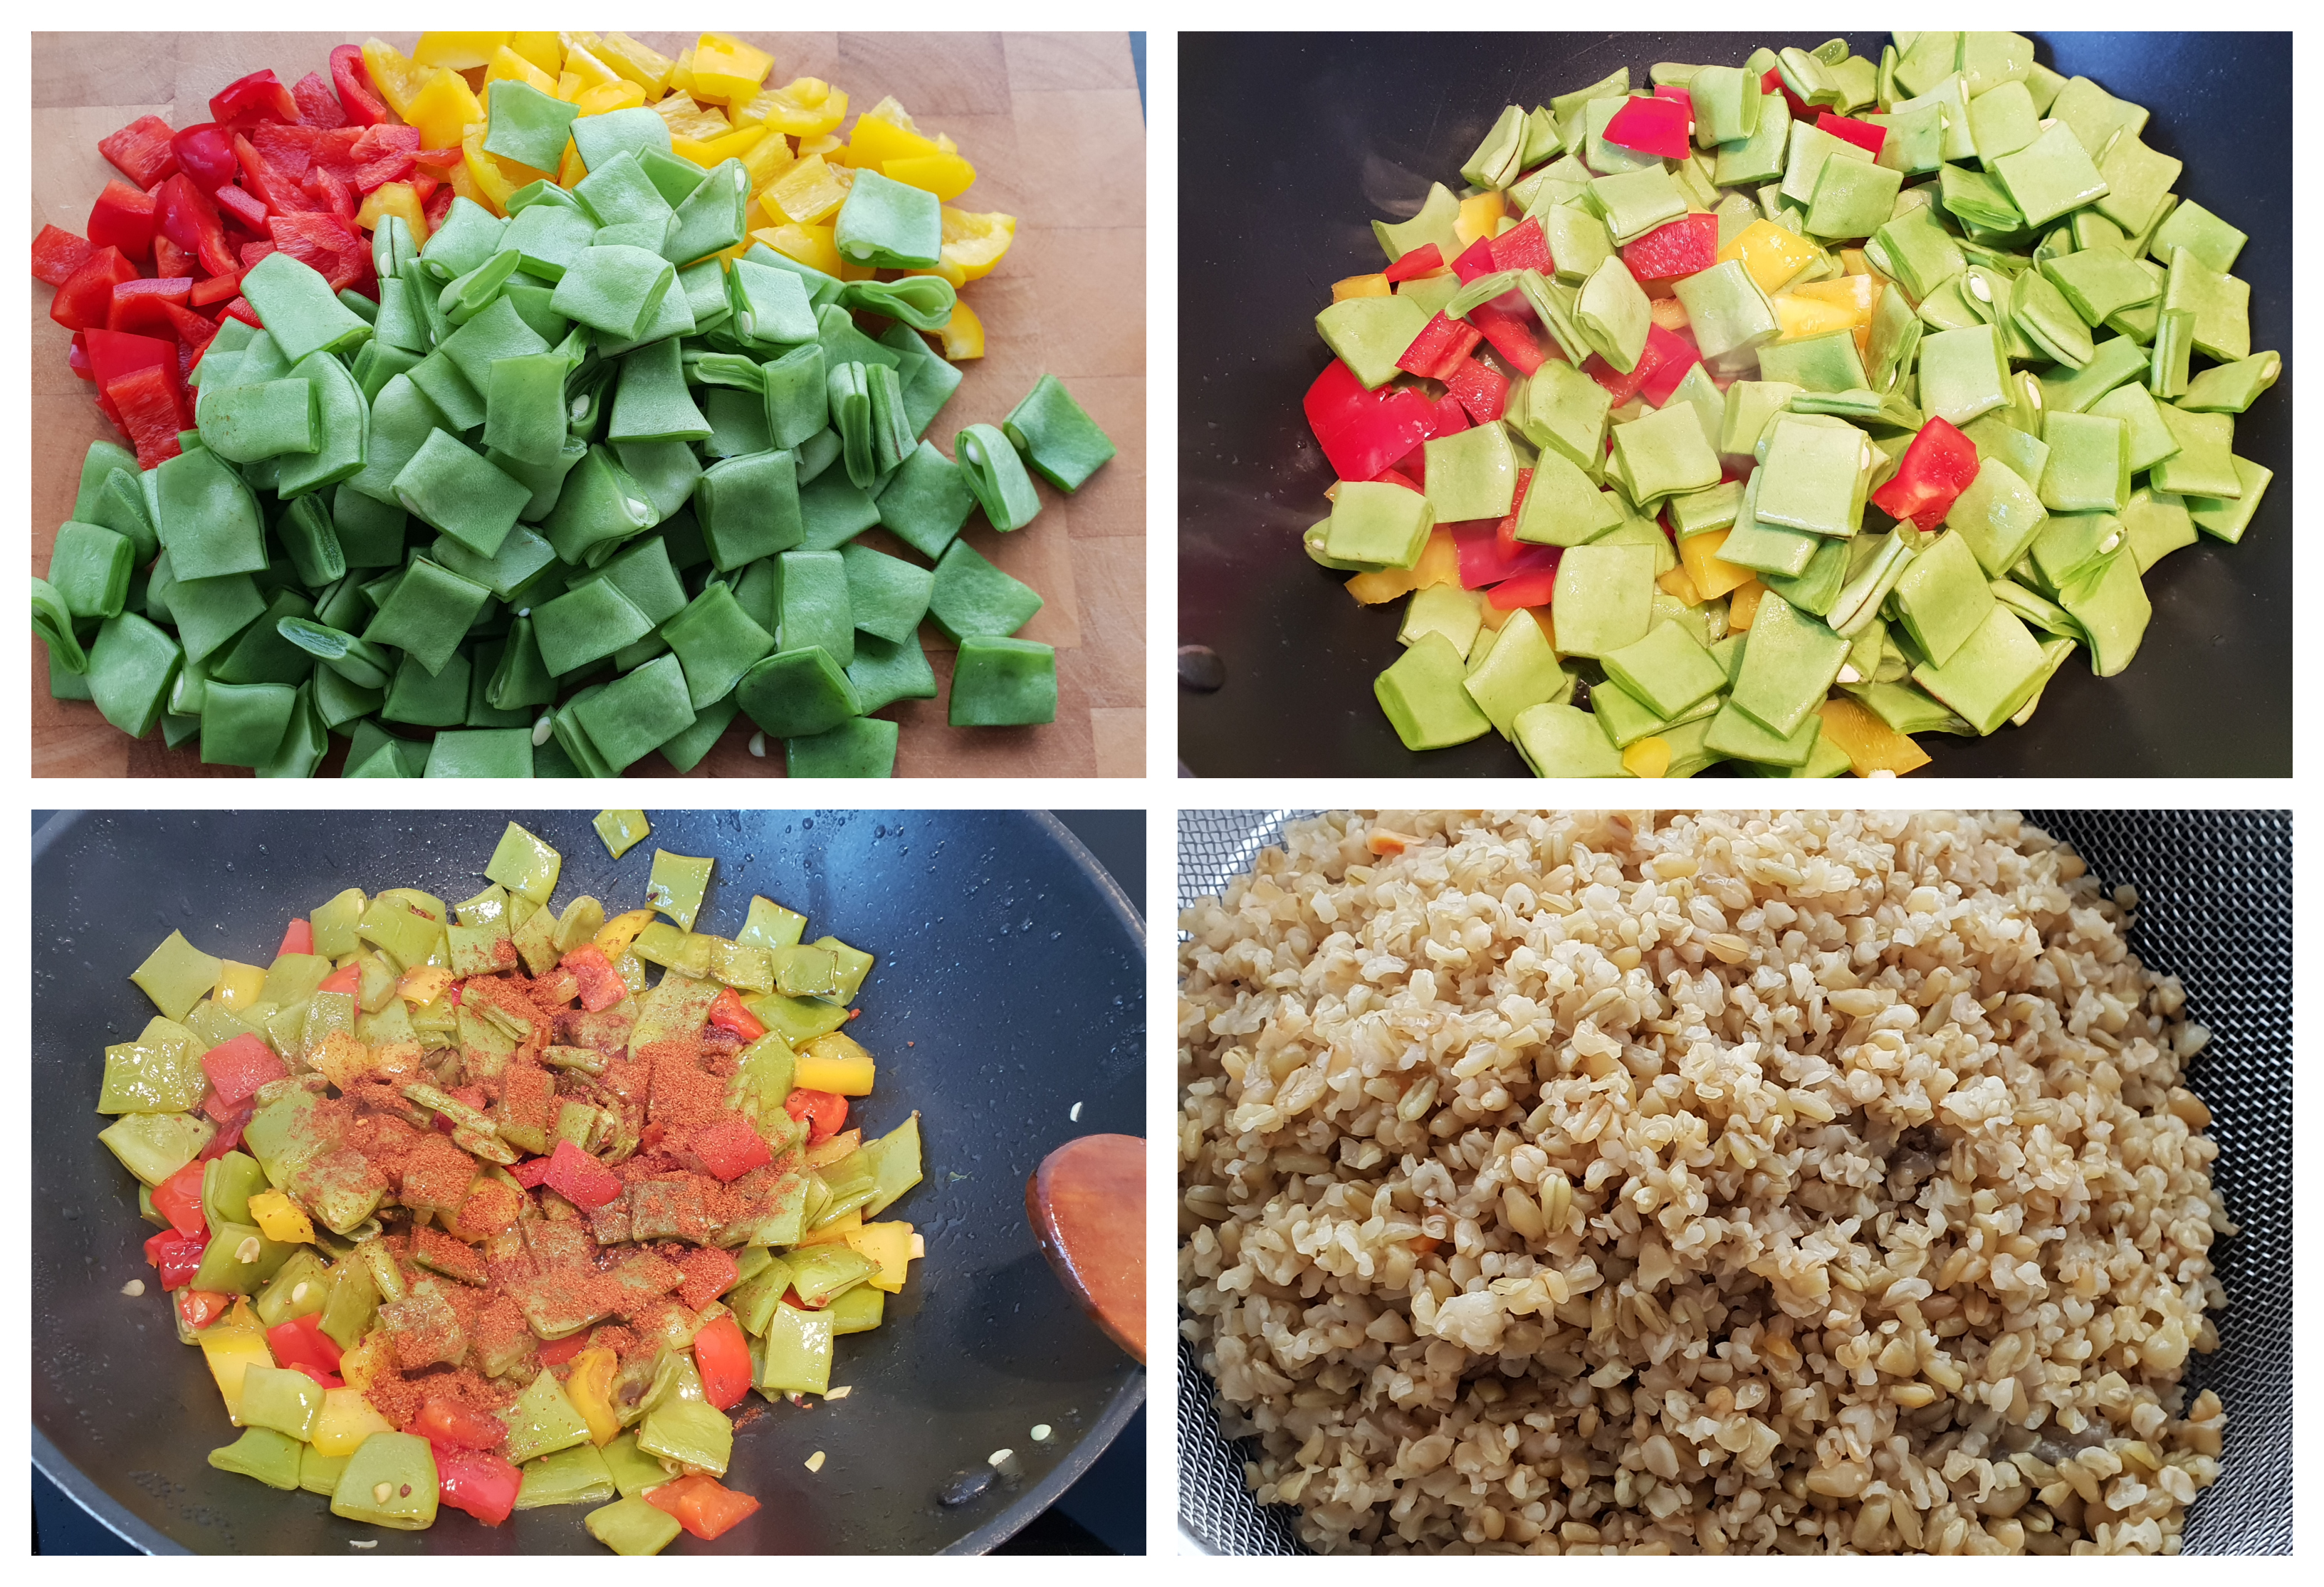 Preparing the freekeh and the vegetables